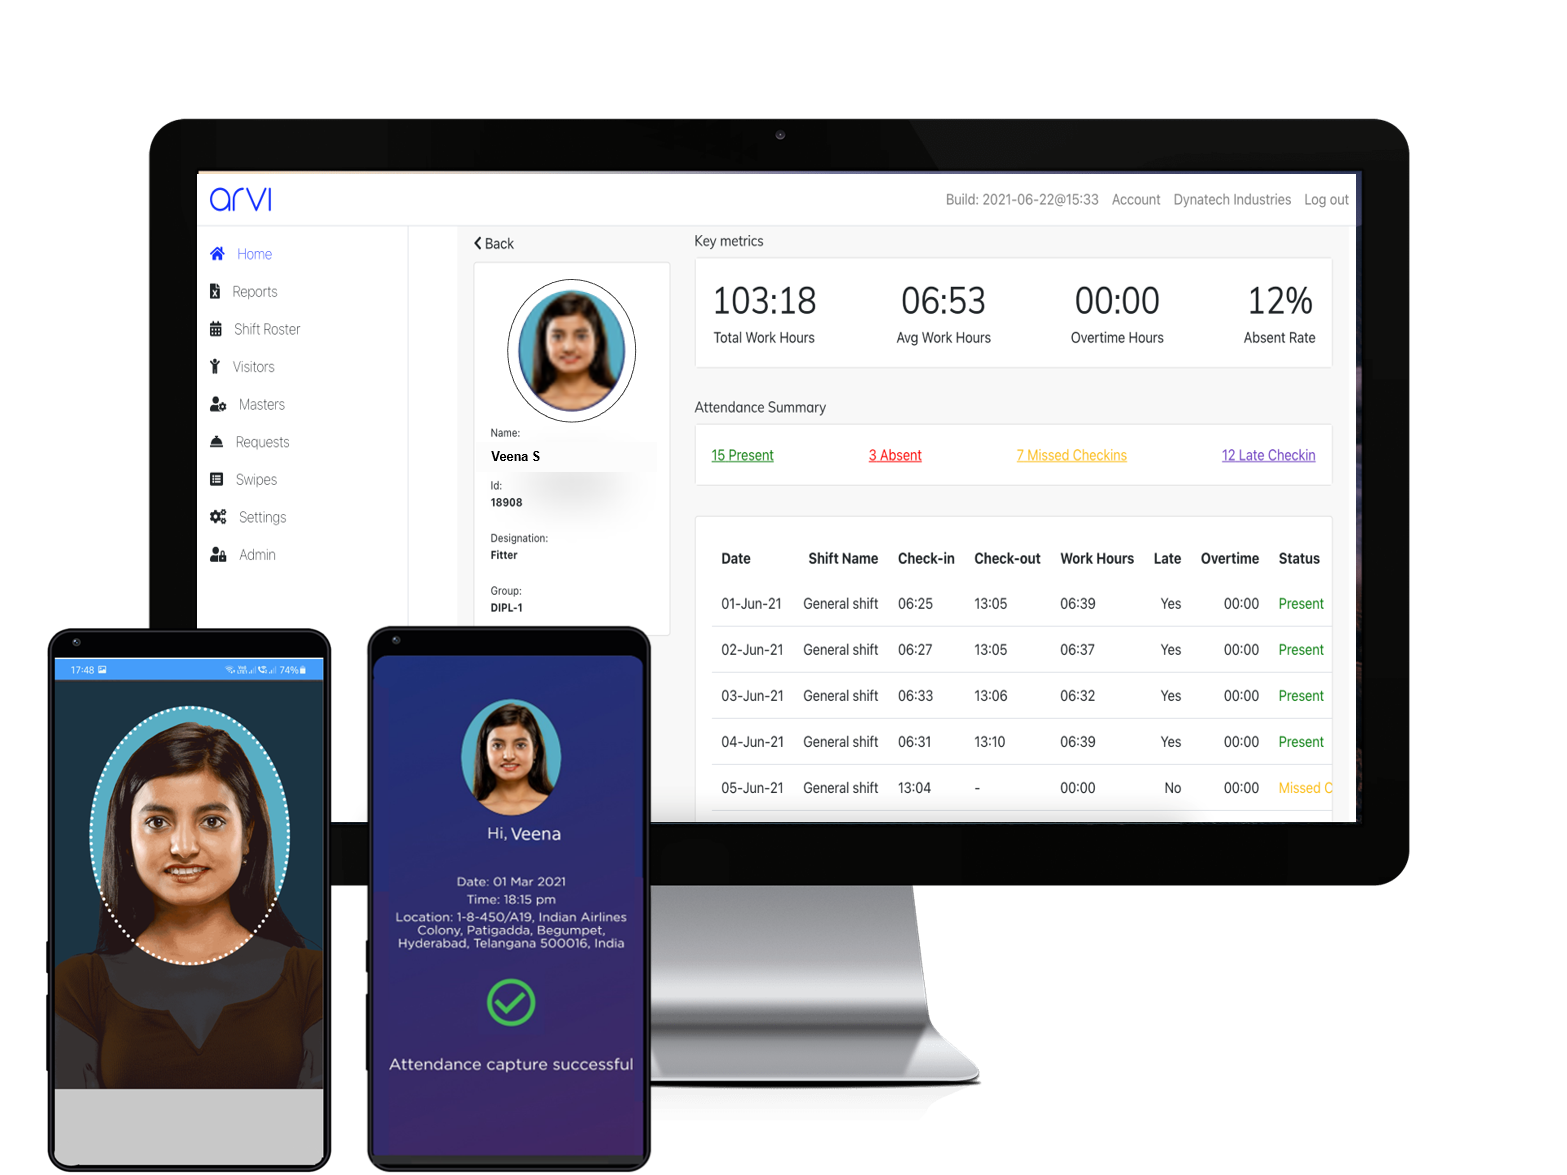 Face-recognition based time & attendance tracking